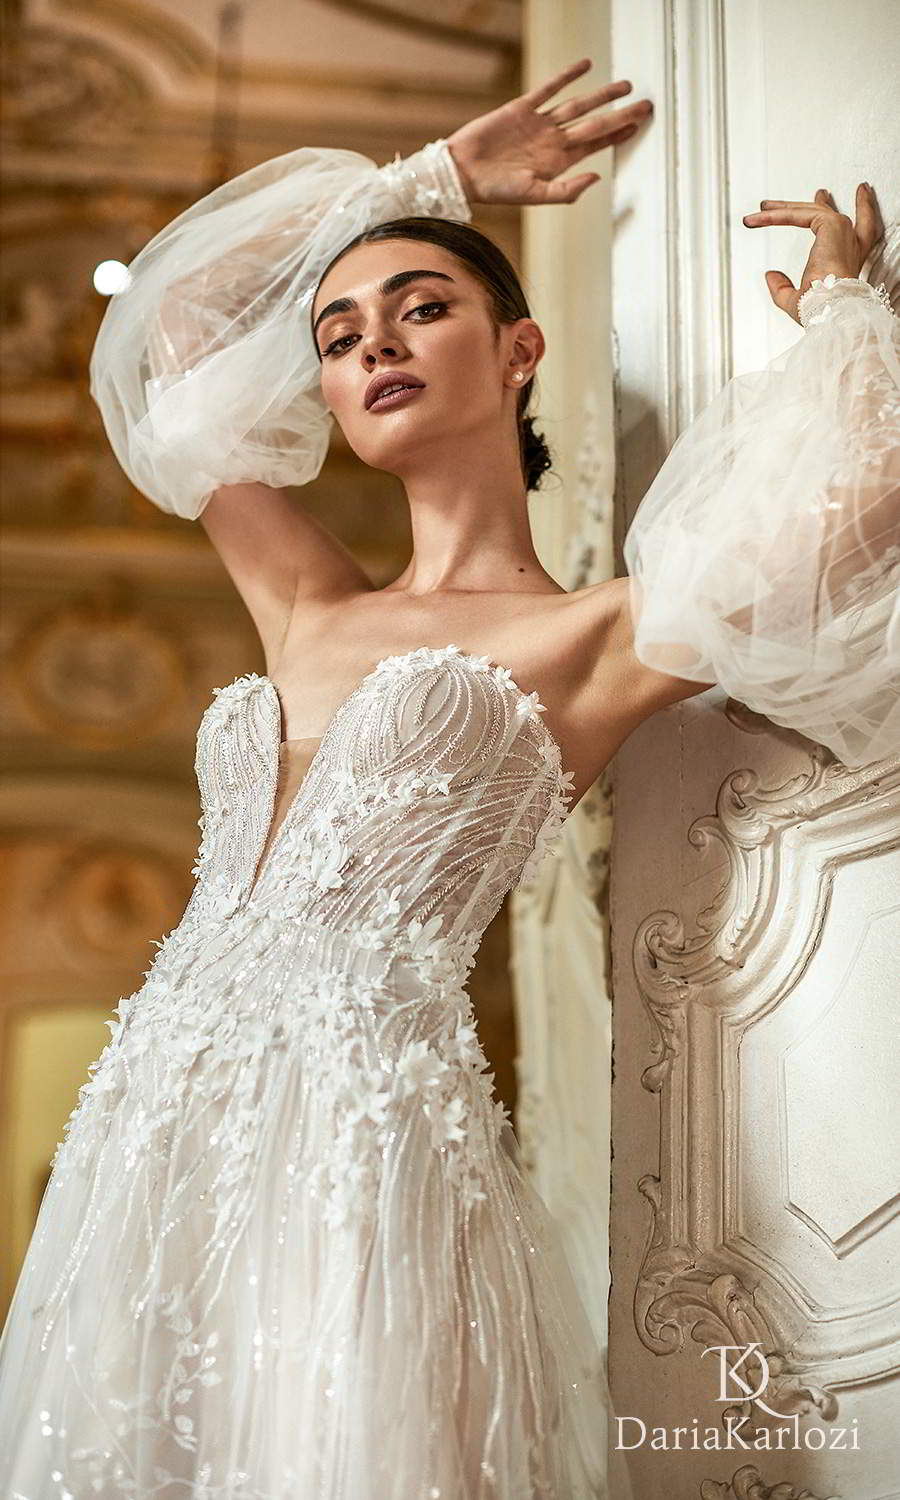 daria karlozi 2021 graceful dream bridal detached puff sleeves strapless sweetheart neckline fully embellished a line ball gown wedding dress (inspiration) zv